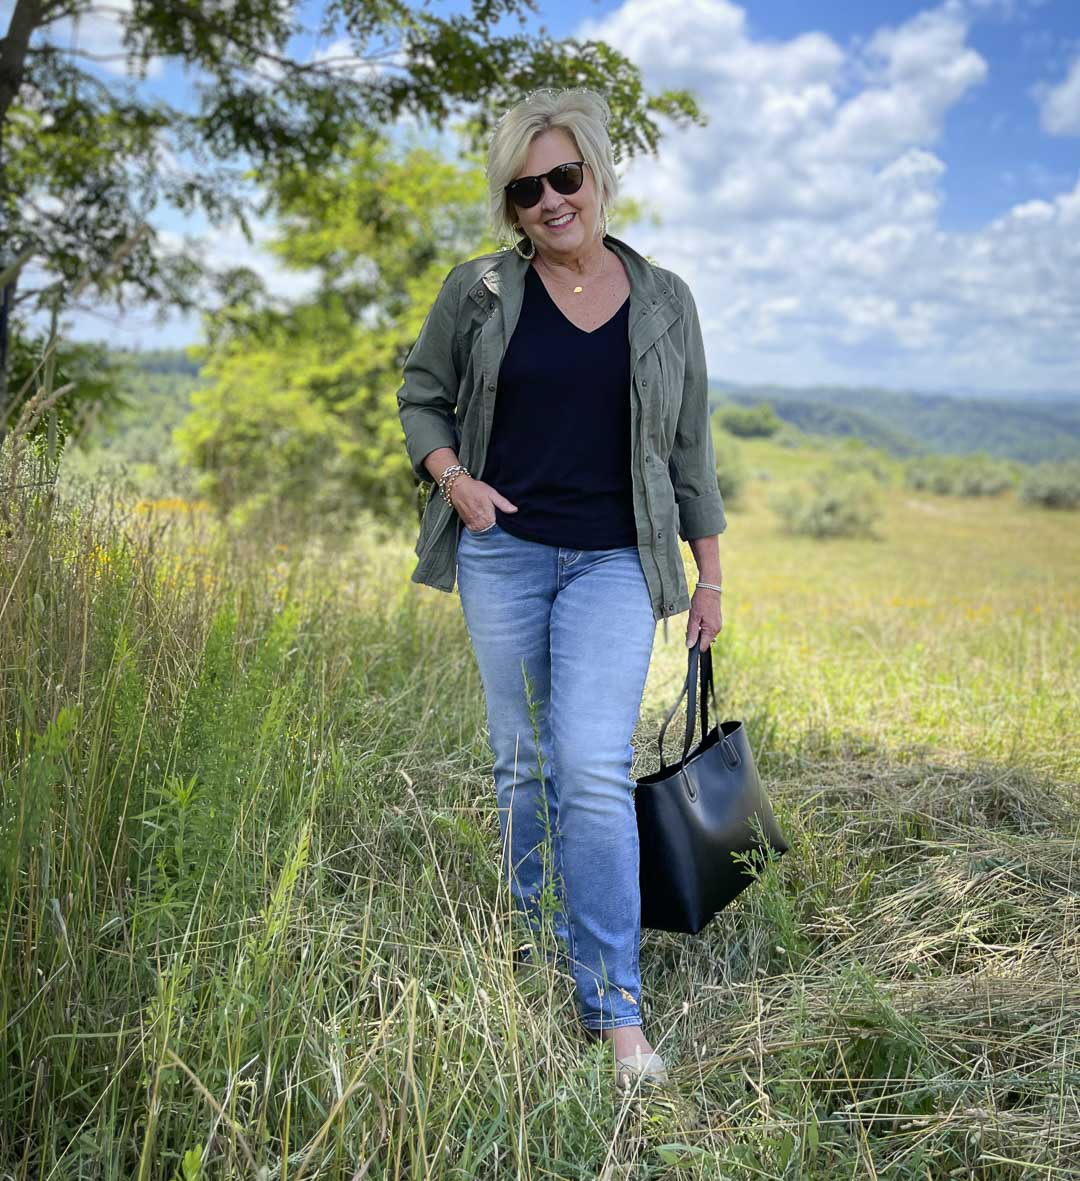 Fashion Blogger 50 Is Not Old is in a field wearing black and olive together with jeans and a black leather tote